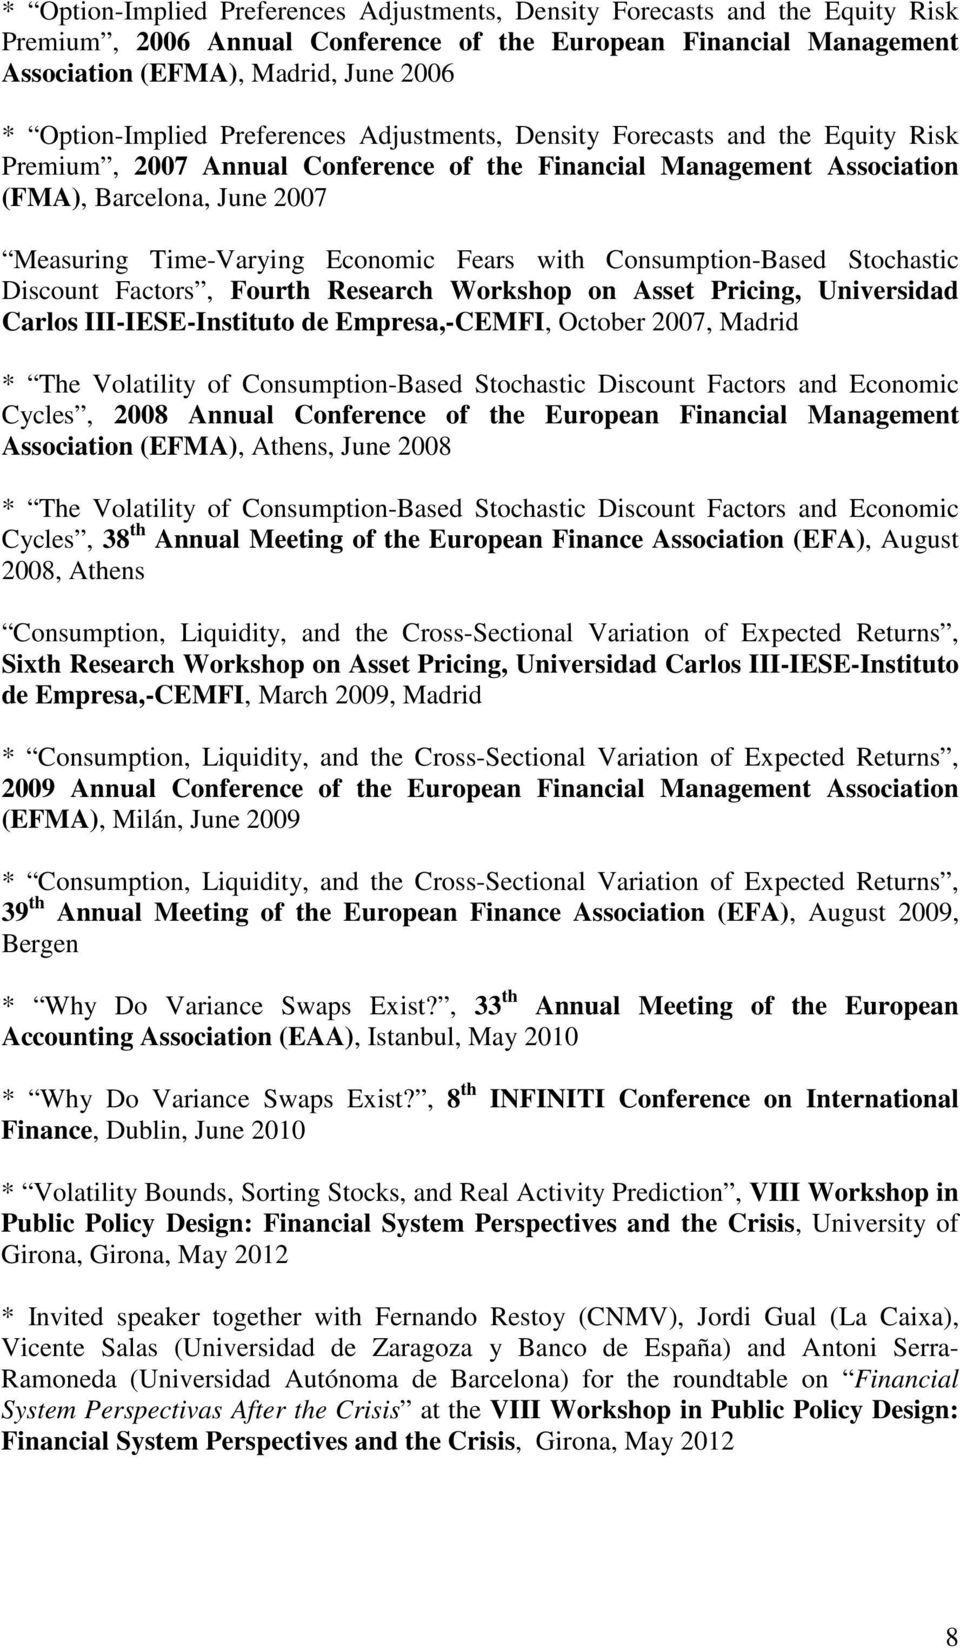 Time-Varying Economic Fears with Consumption-Based Stochastic Discount Factors, Fourth Research Workshop on Asset Pricing, Universidad Carlos III-IESE-Instituto de Empresa,-CEMFI, October 2007,